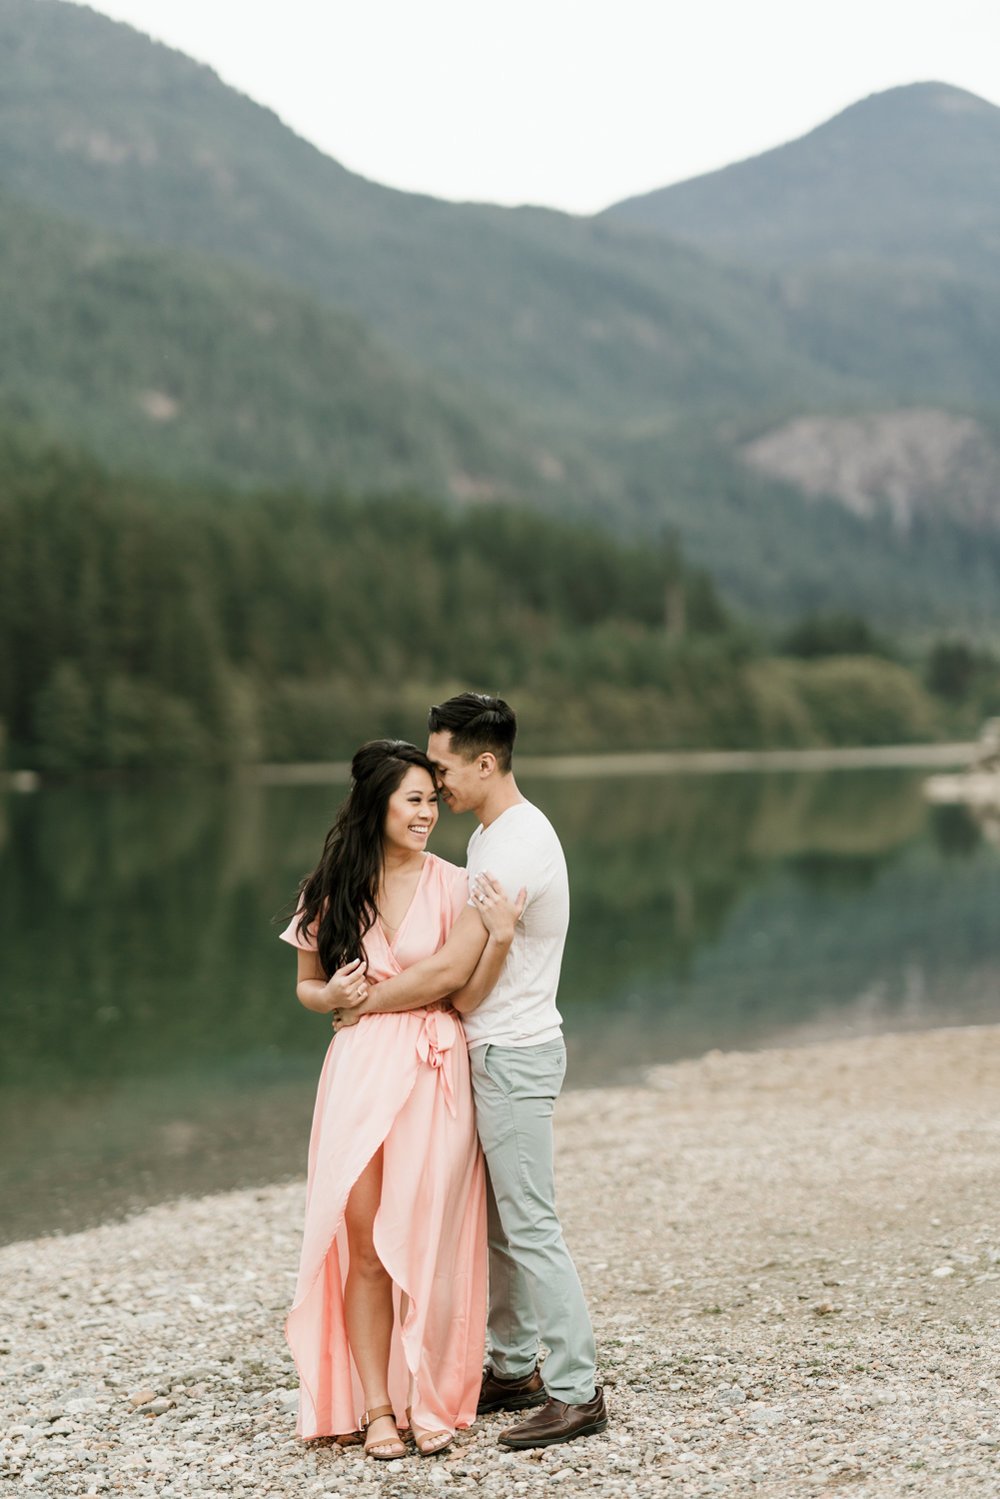 April Yentas Photography - Anh Thu & Hoan-17.jpg